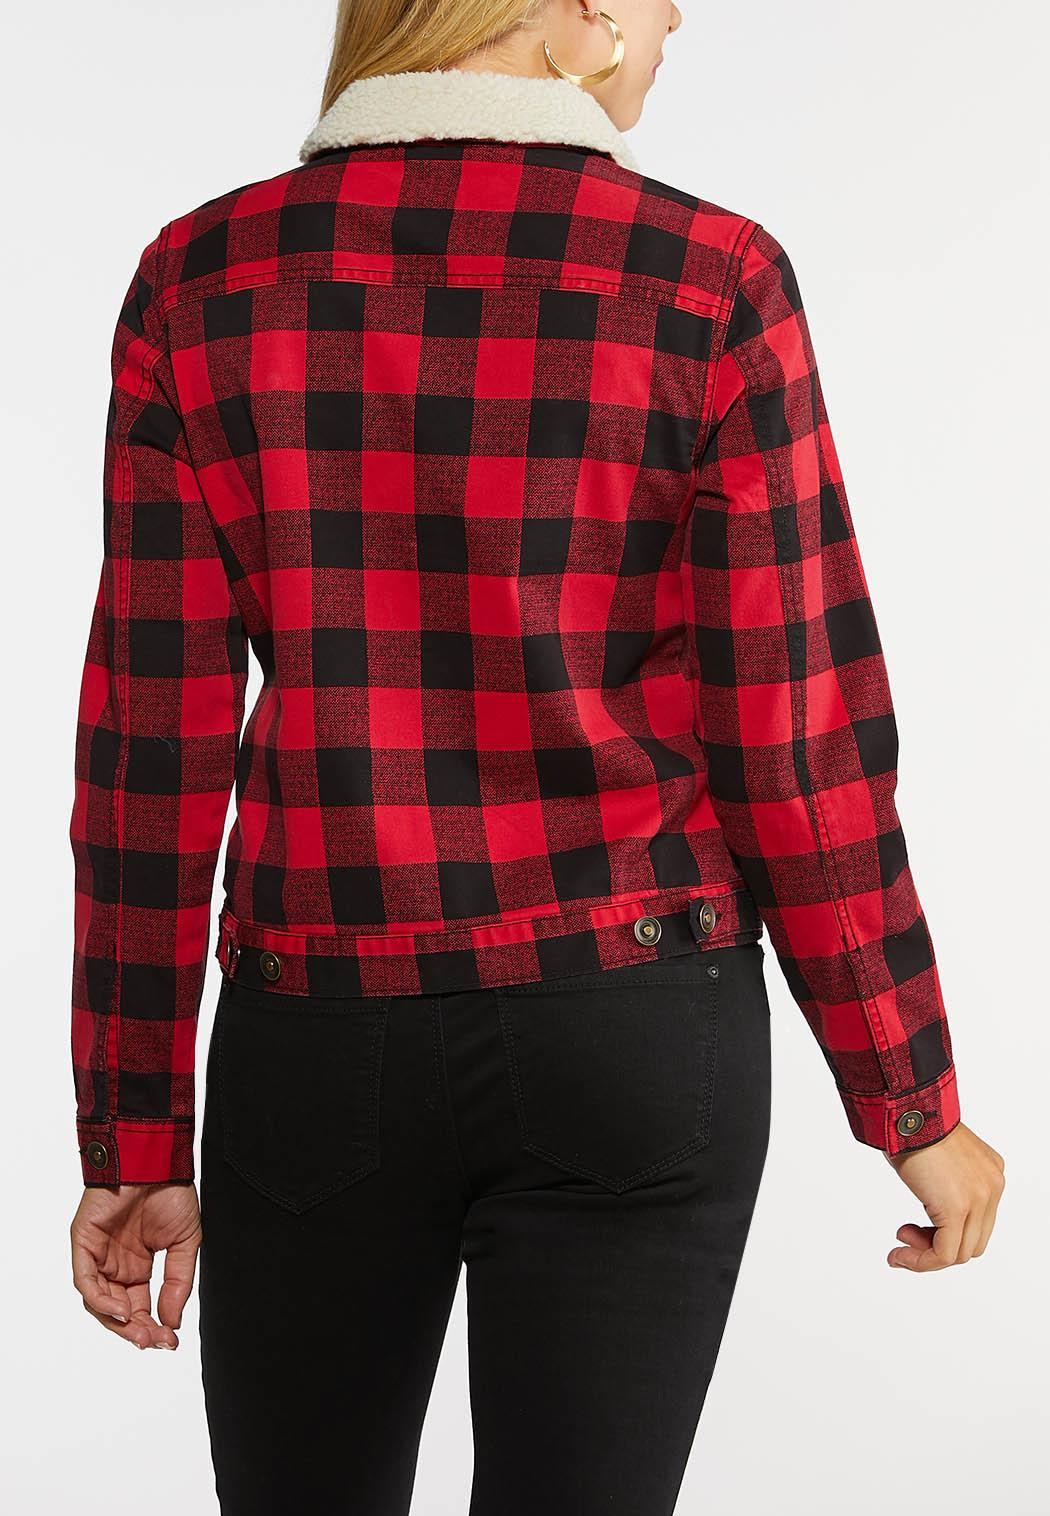 Sherpa Plaid Jacket (Item #43997630)